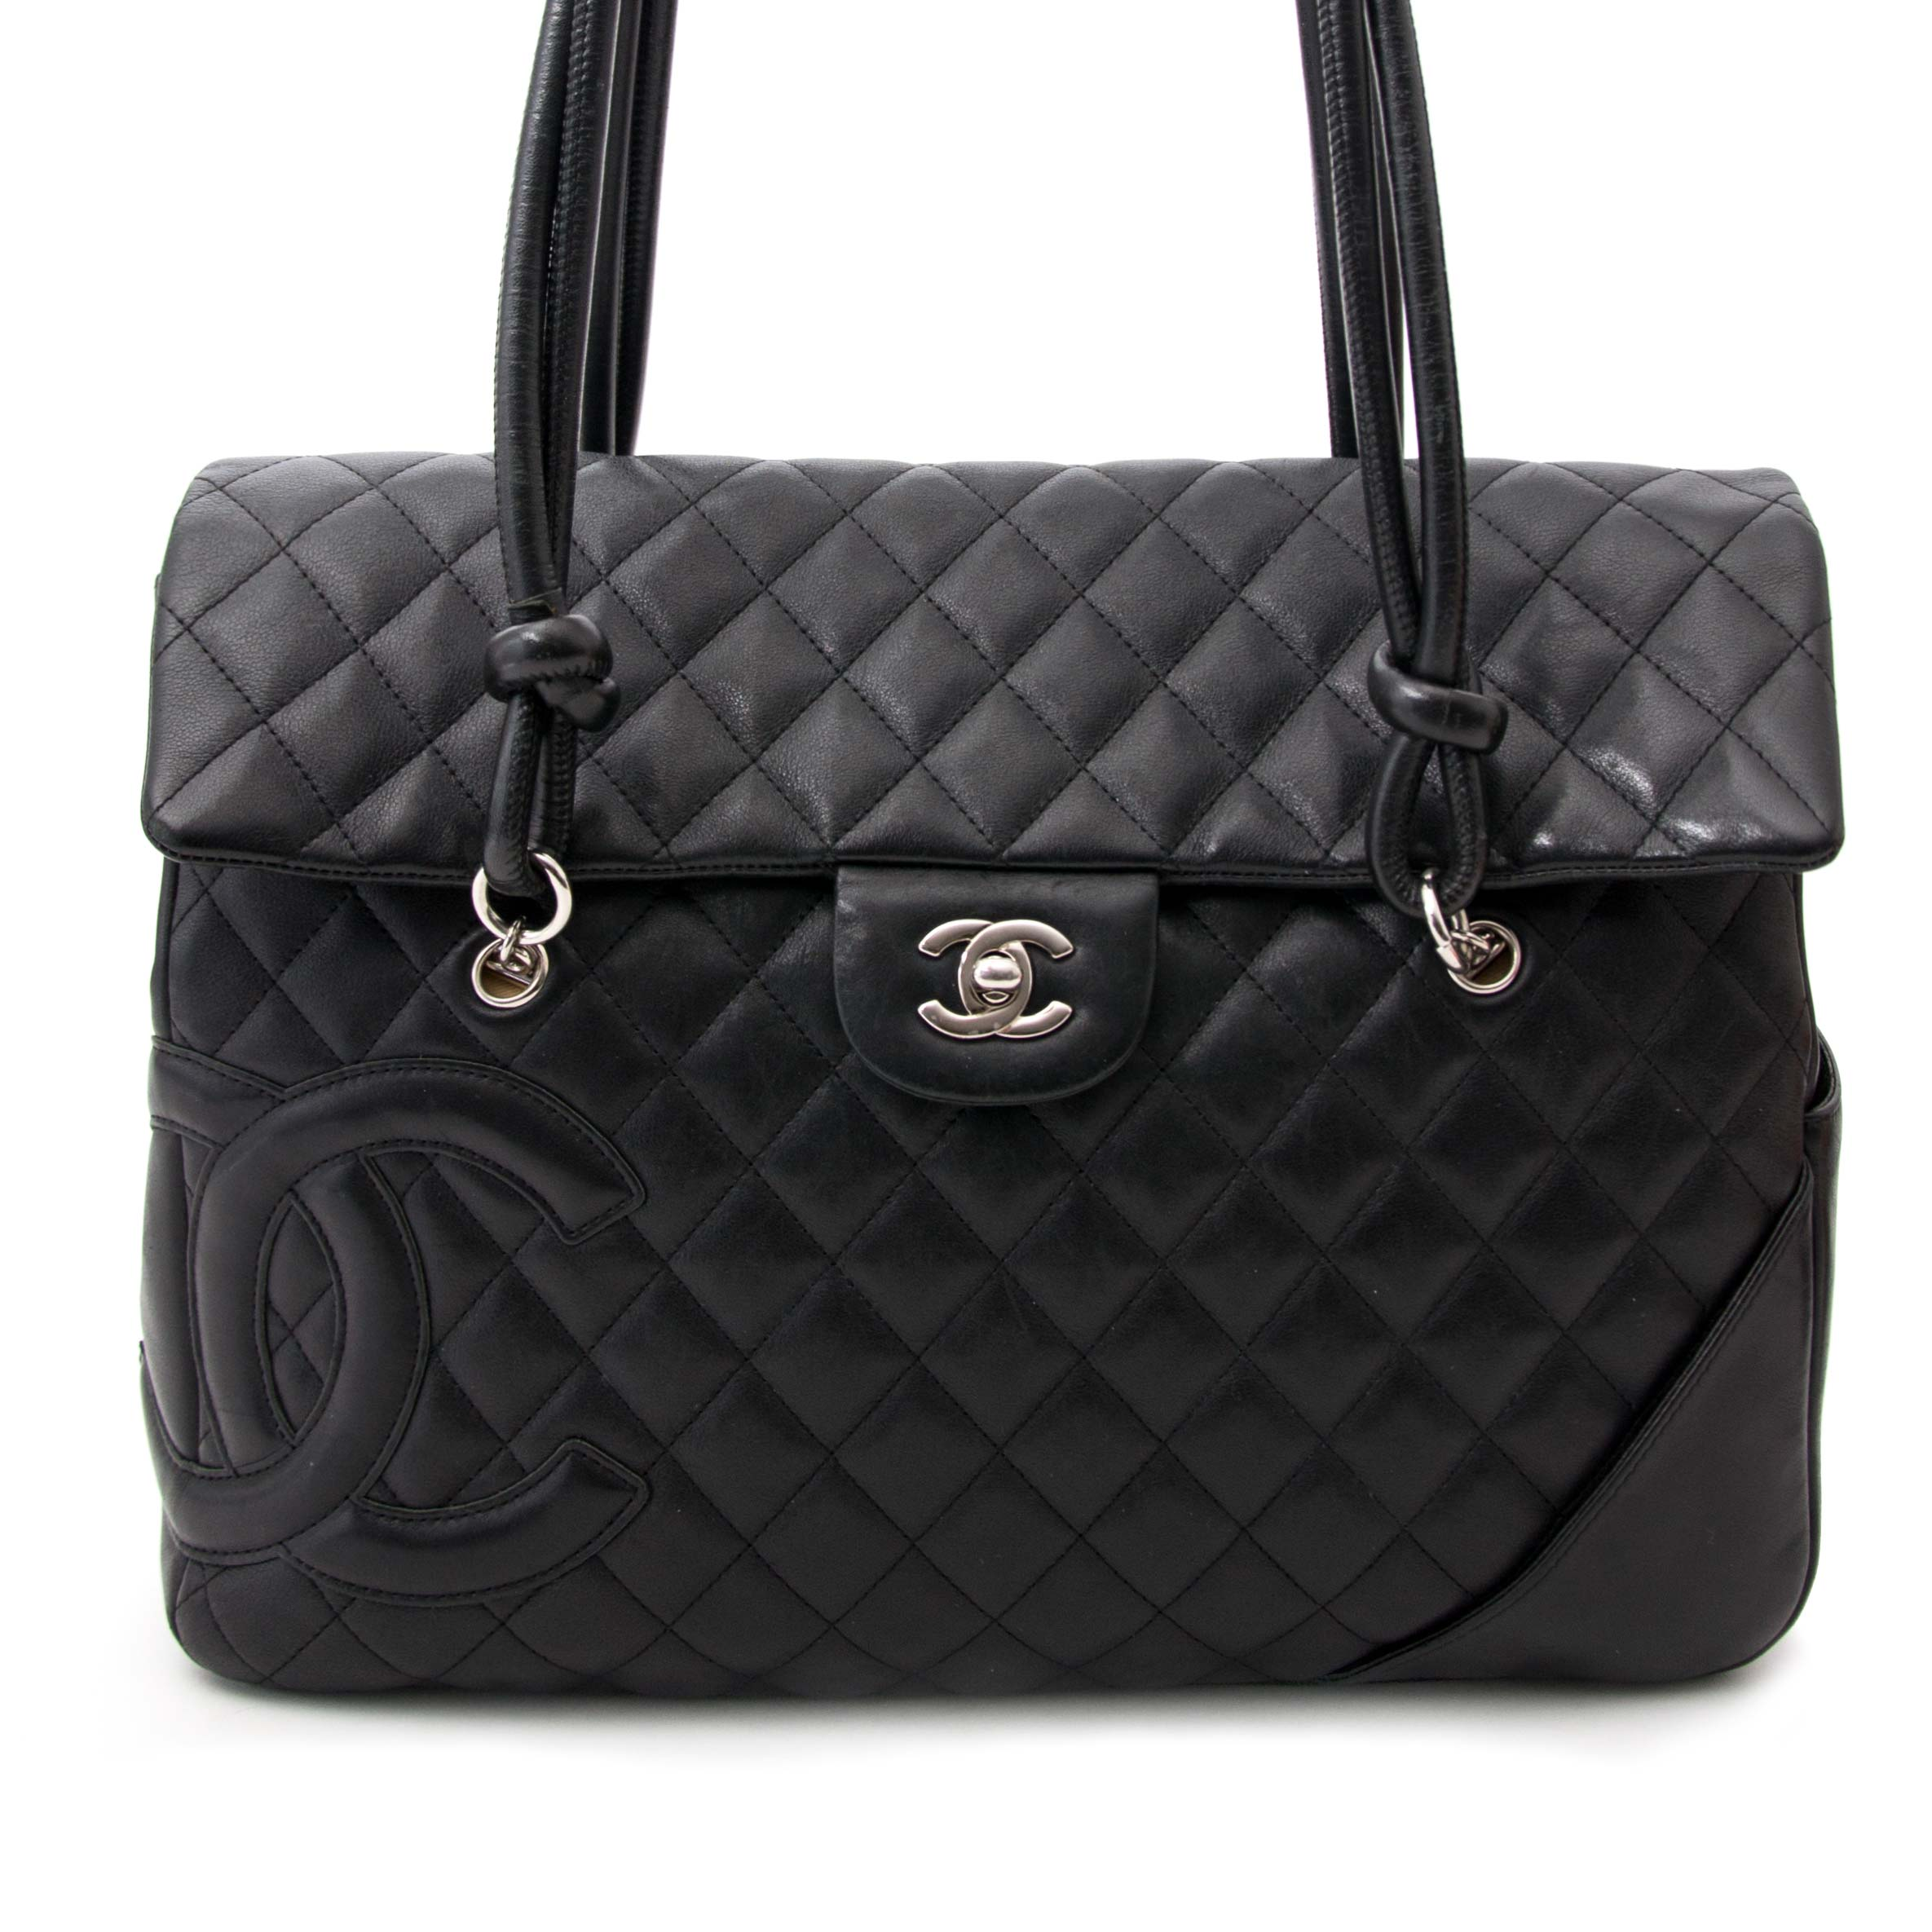 93254ea3c15d ... buy safe and secure online at labellov.com for the best price chanel  black shopping